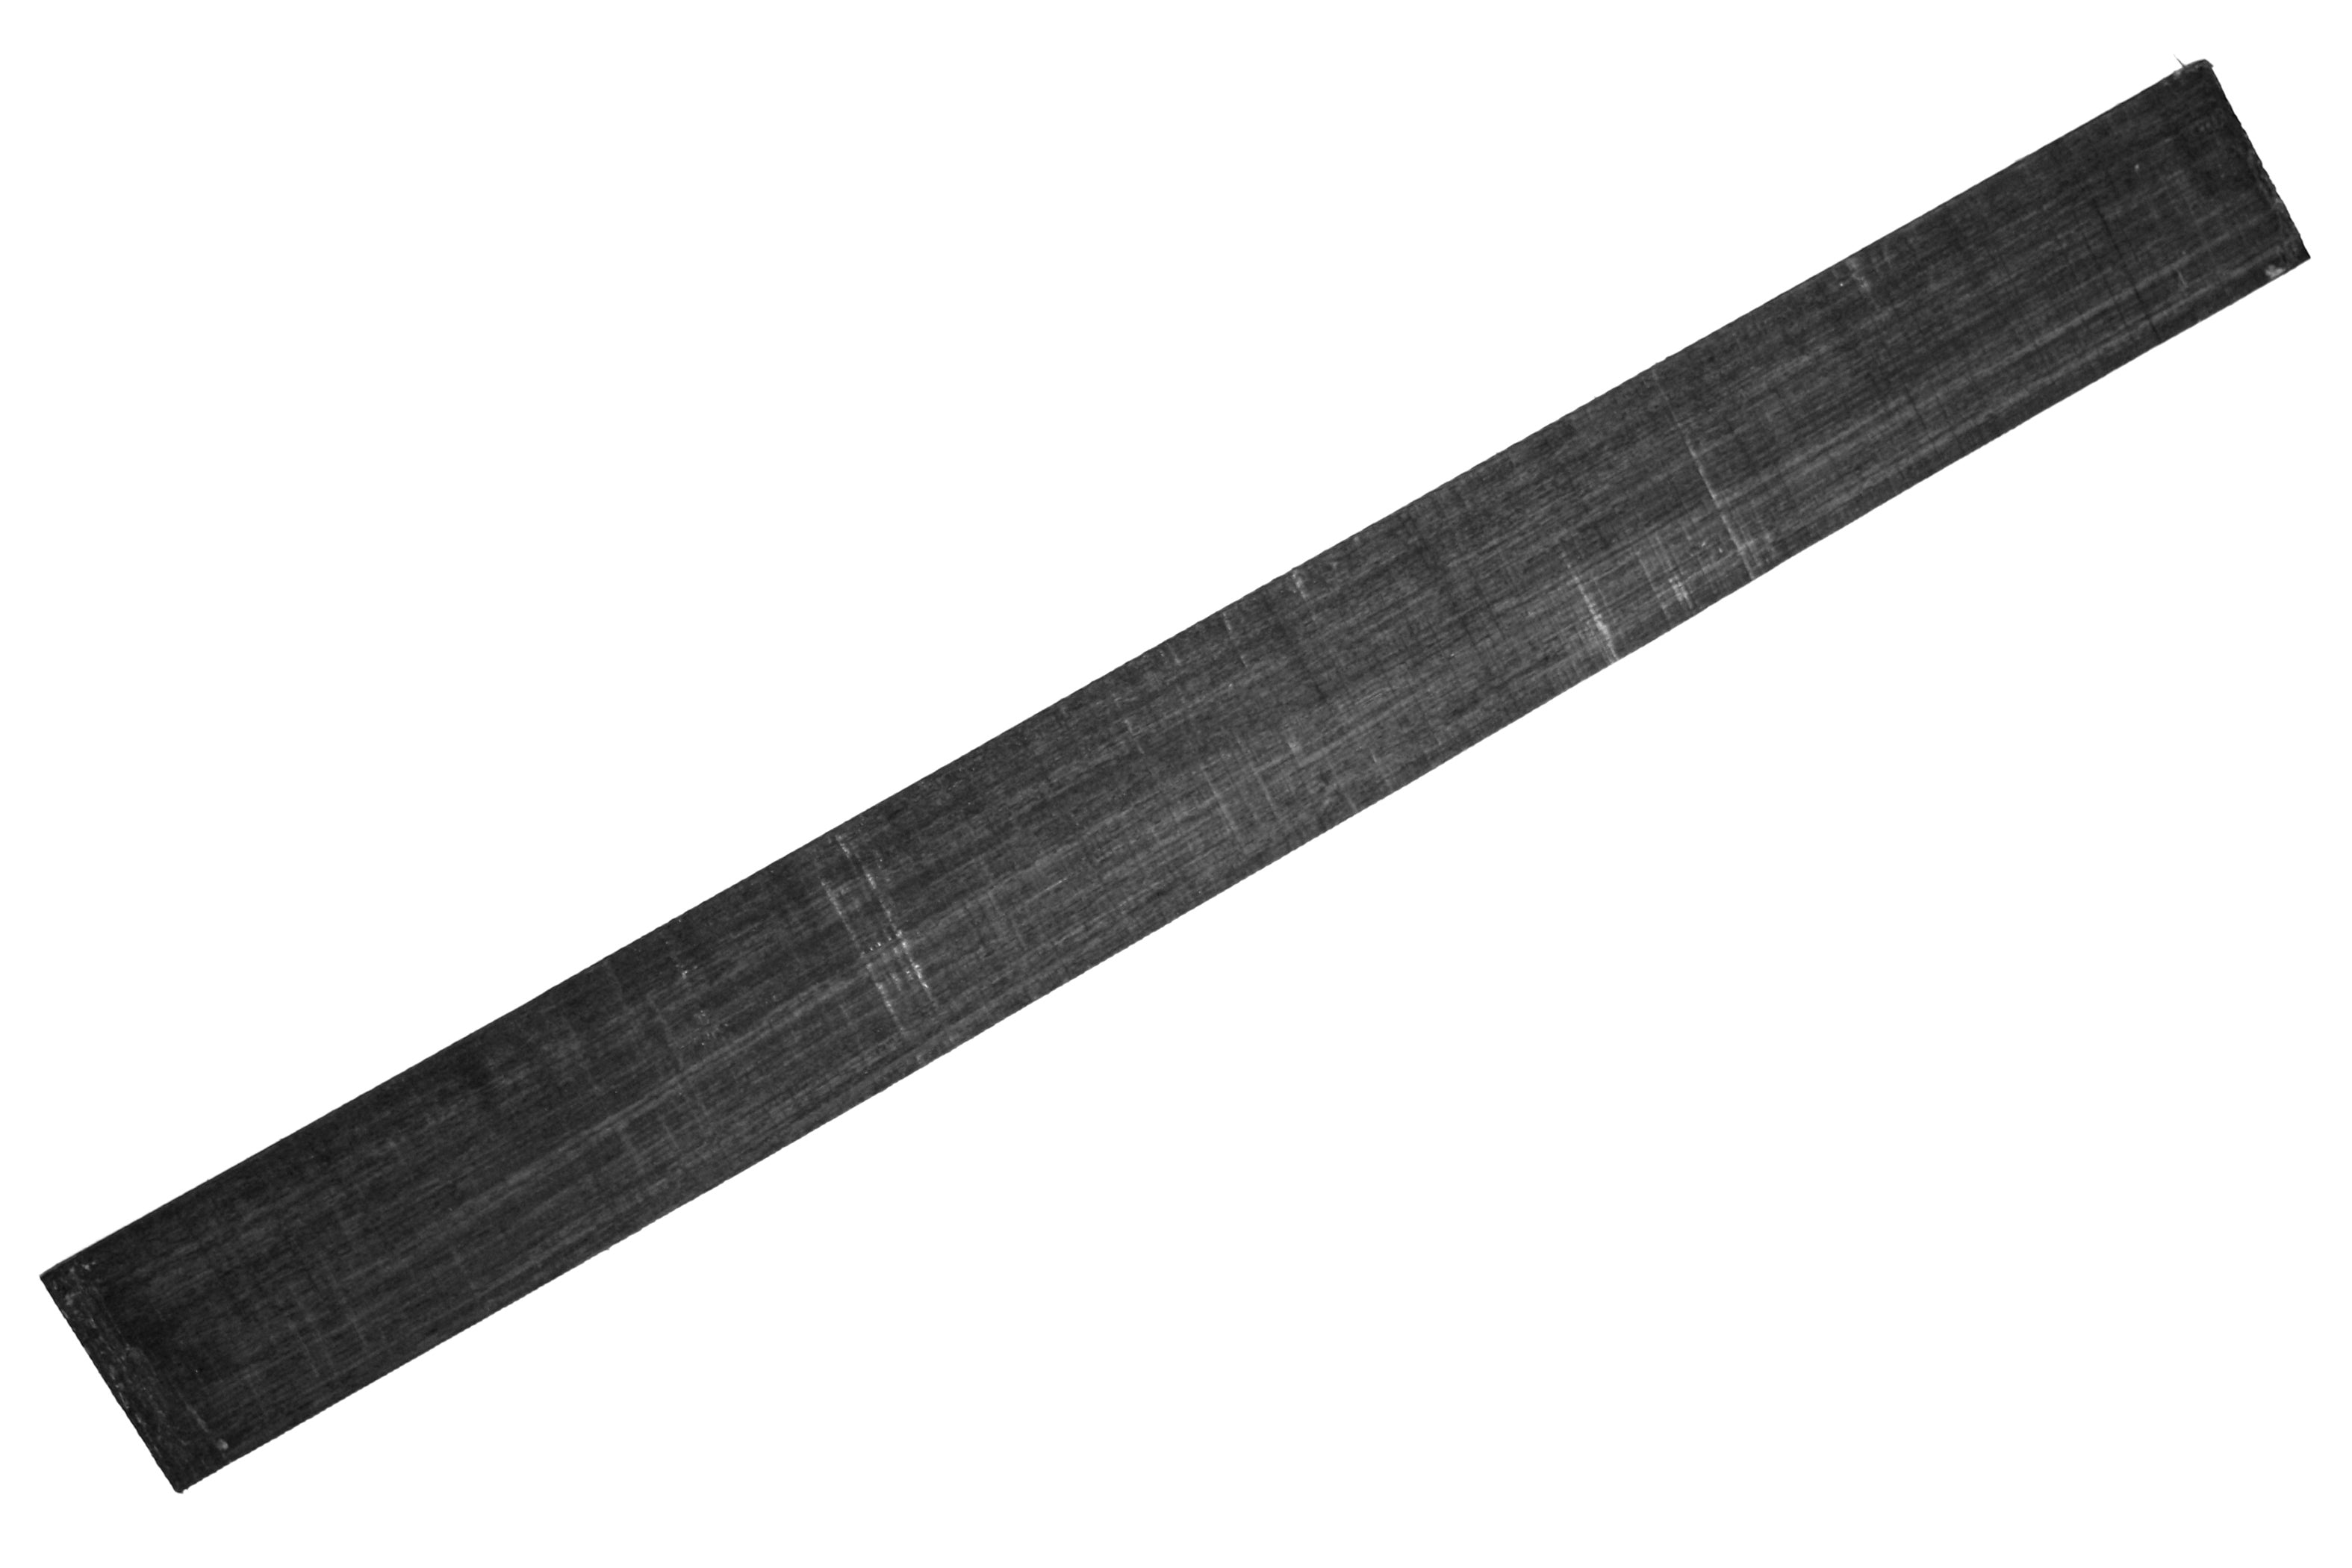 LT-4960 Fretboard Blank for Bass